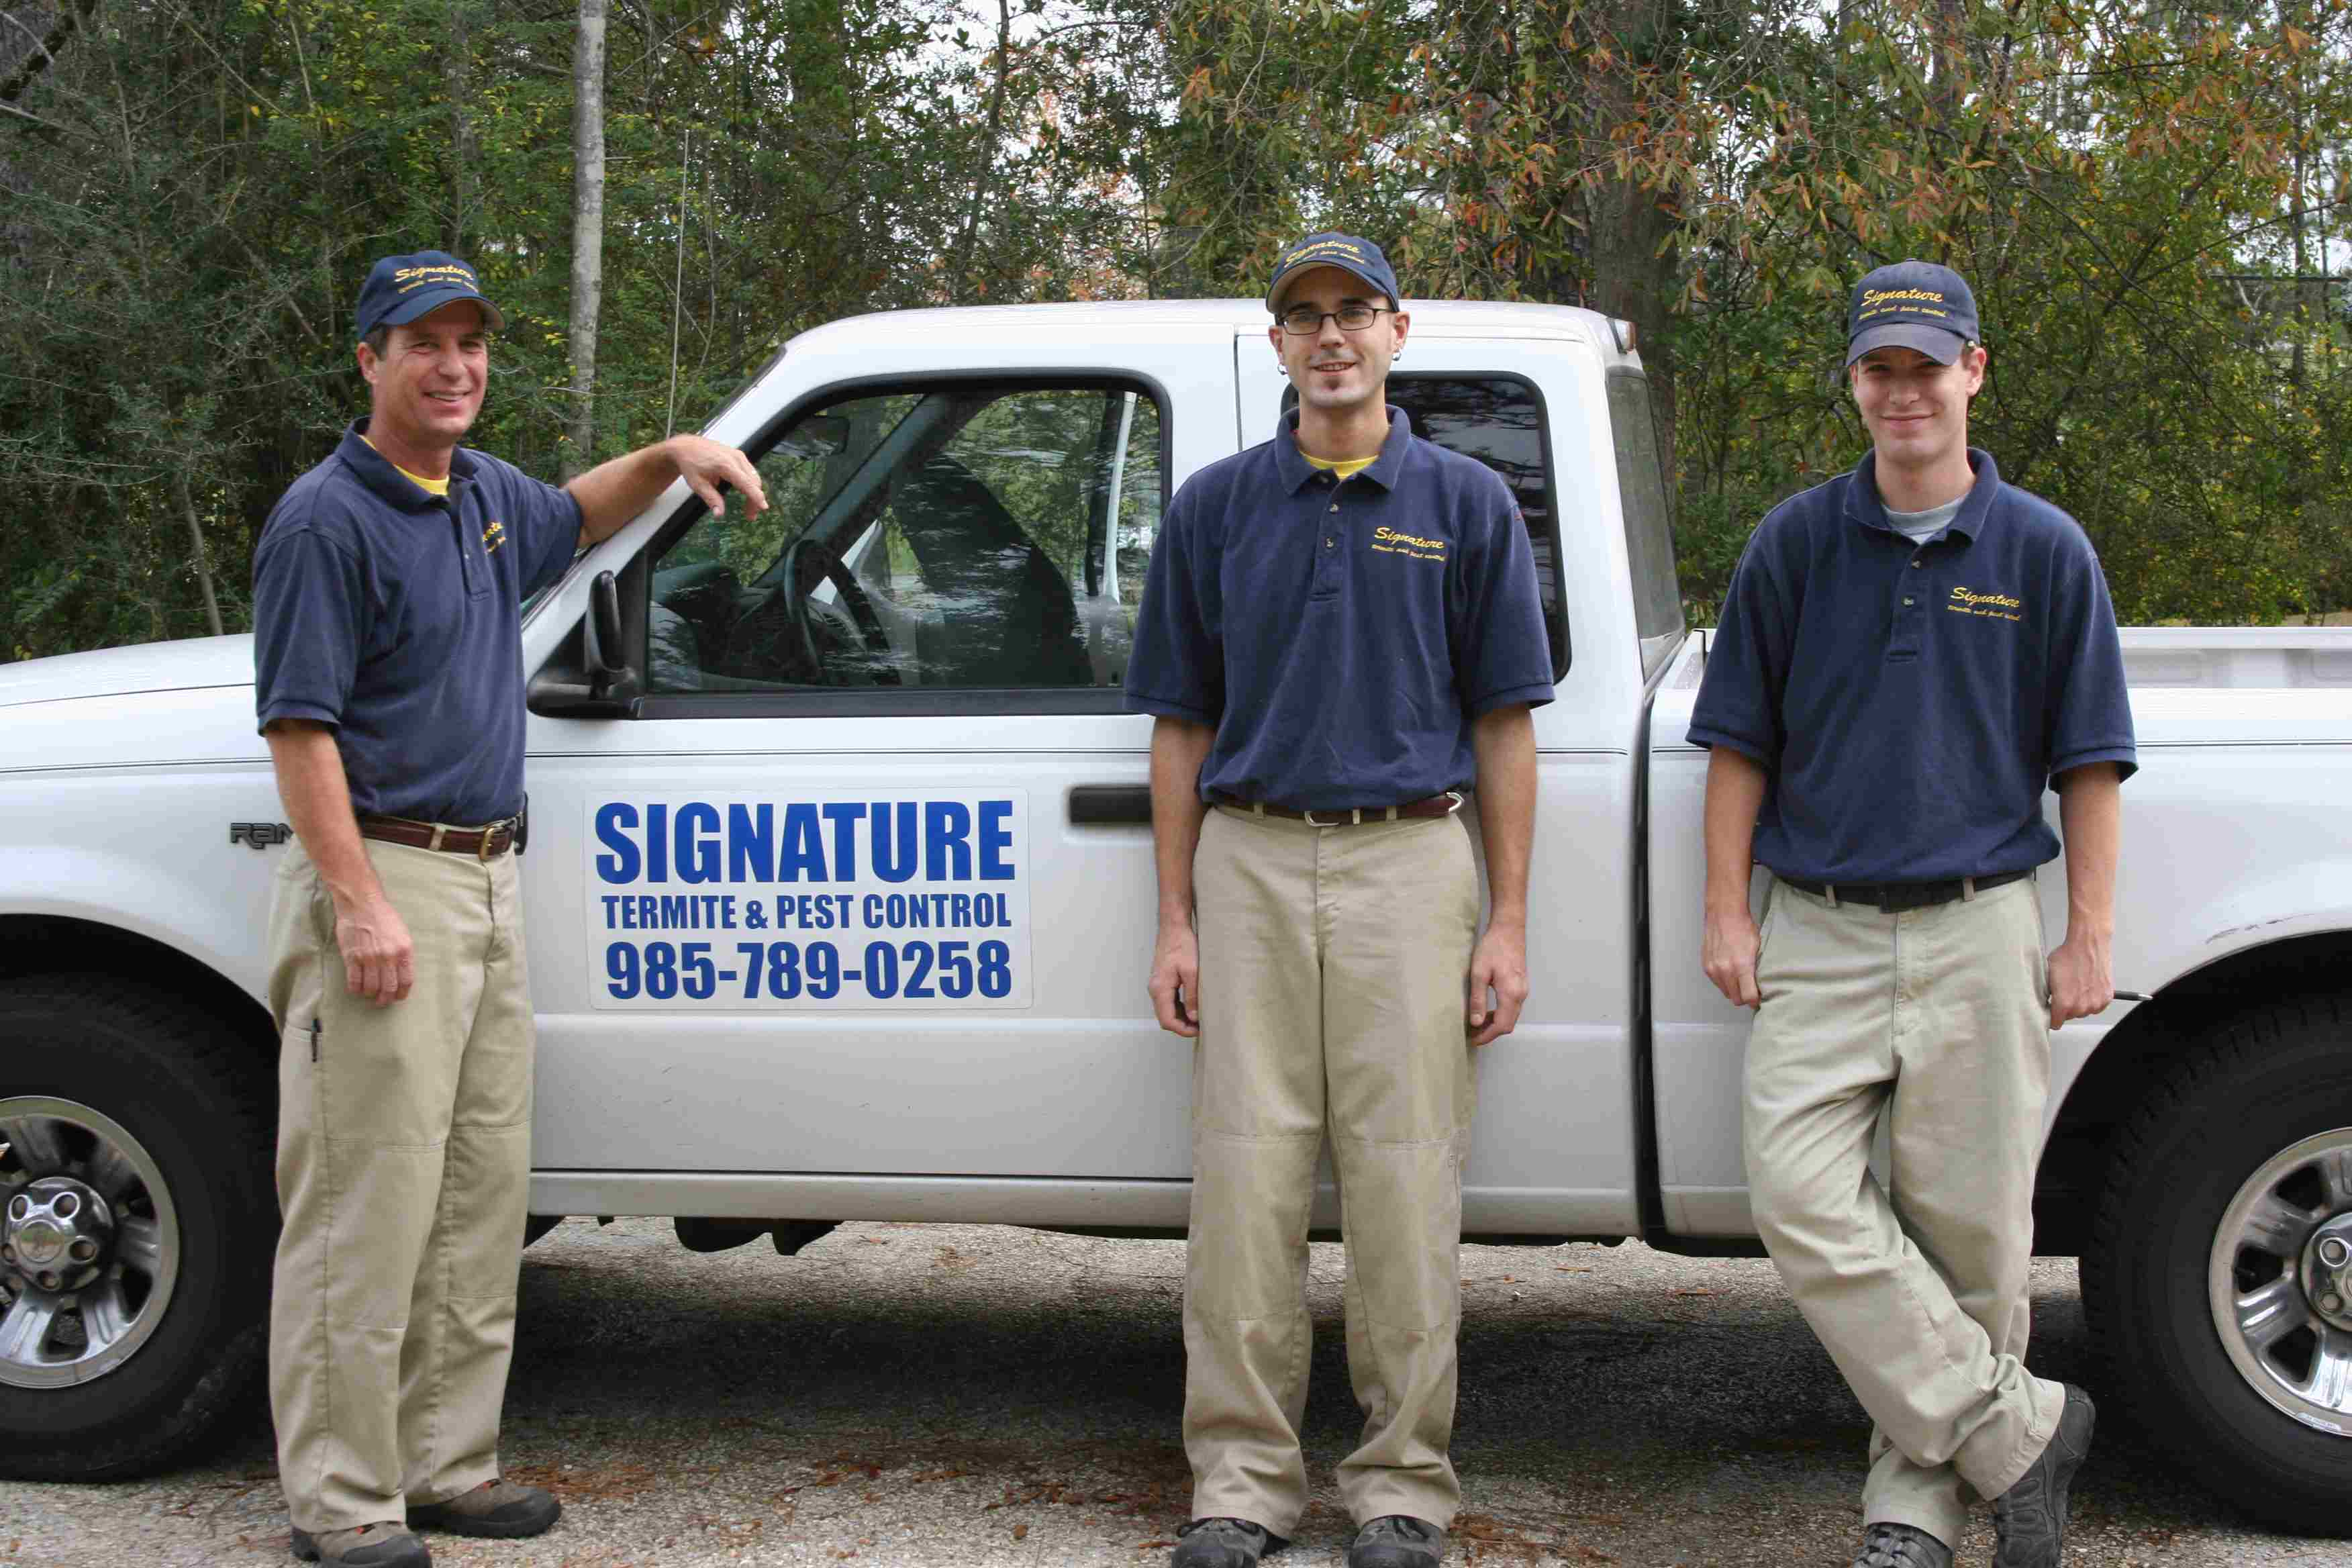 Signature Team With Service Truck